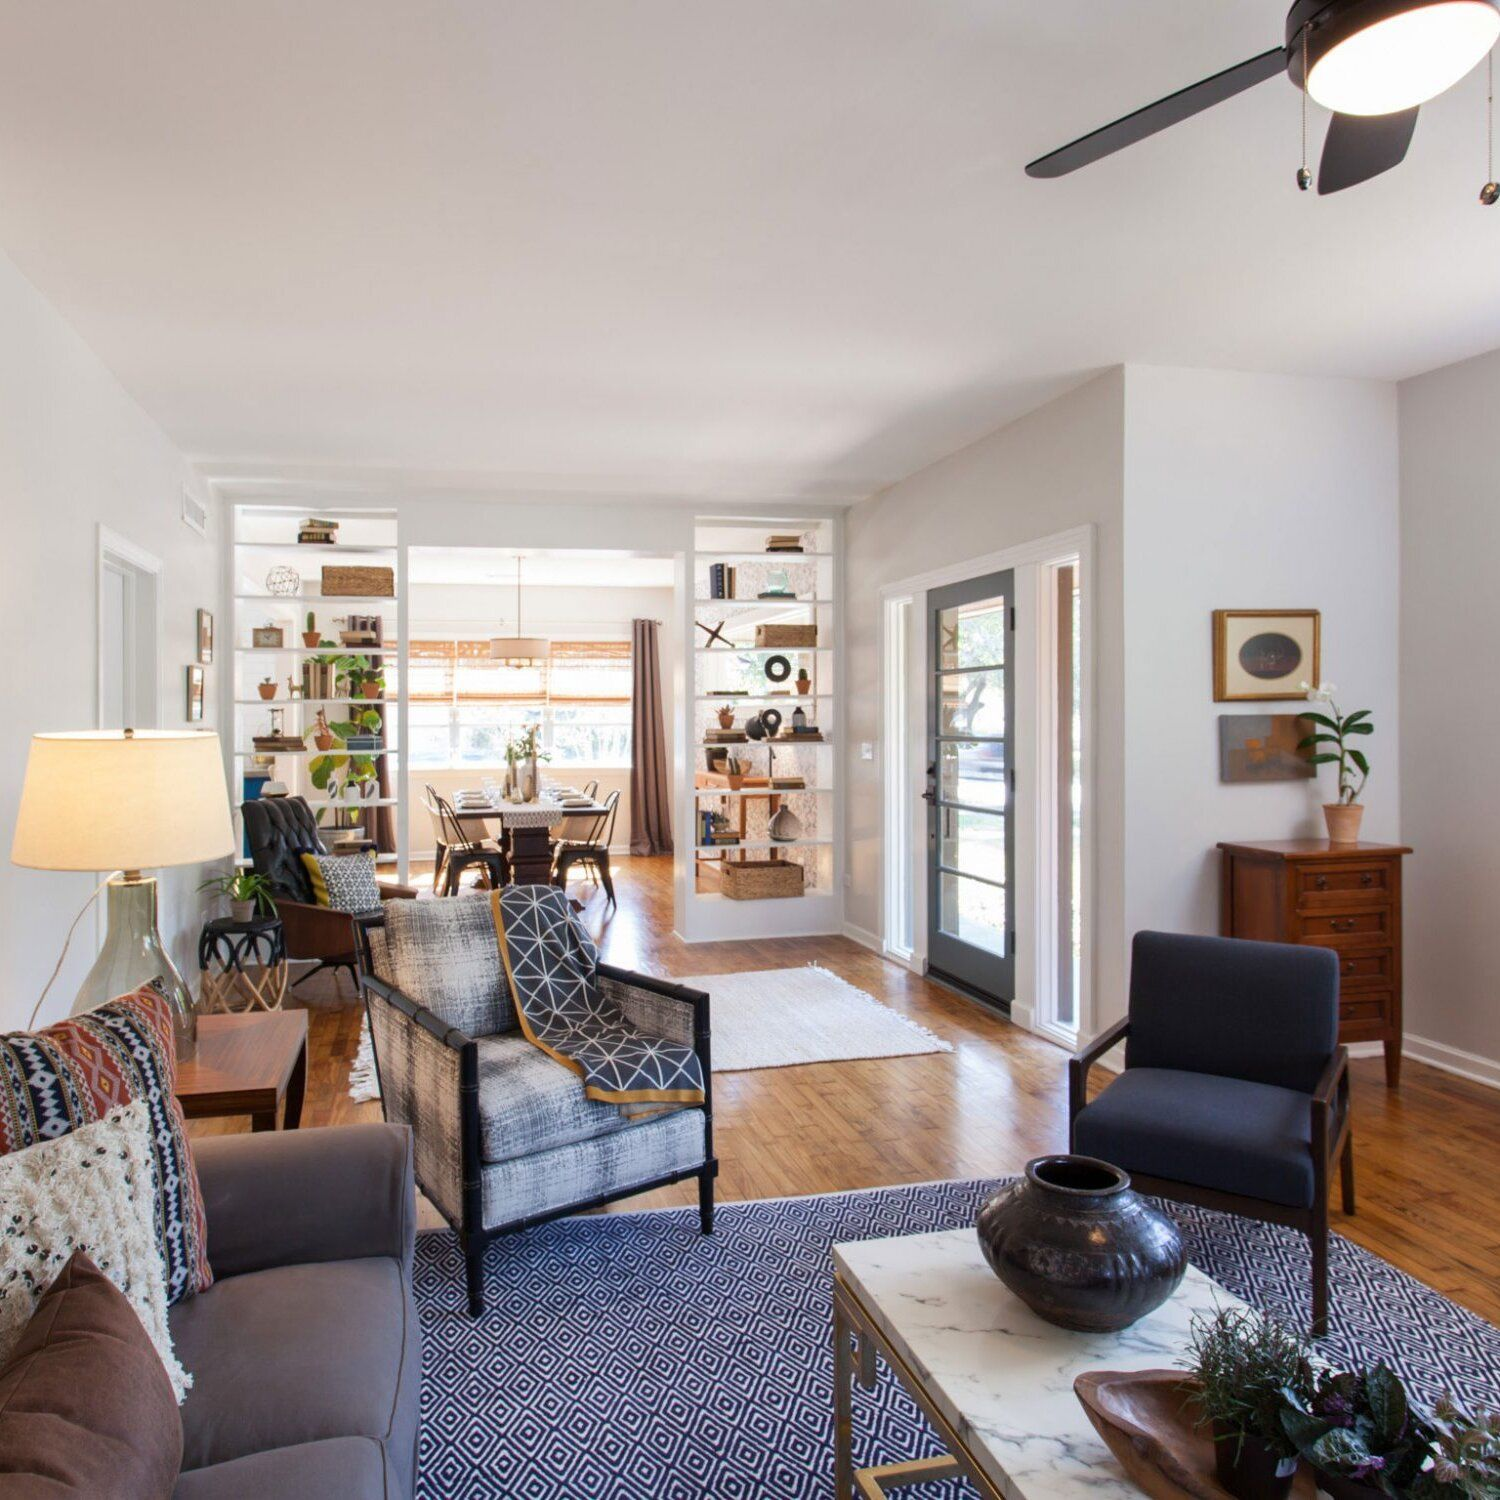 Hgtv Home Design Ideas: 6 Decorating Ideas From Home Town That You Can Steal For